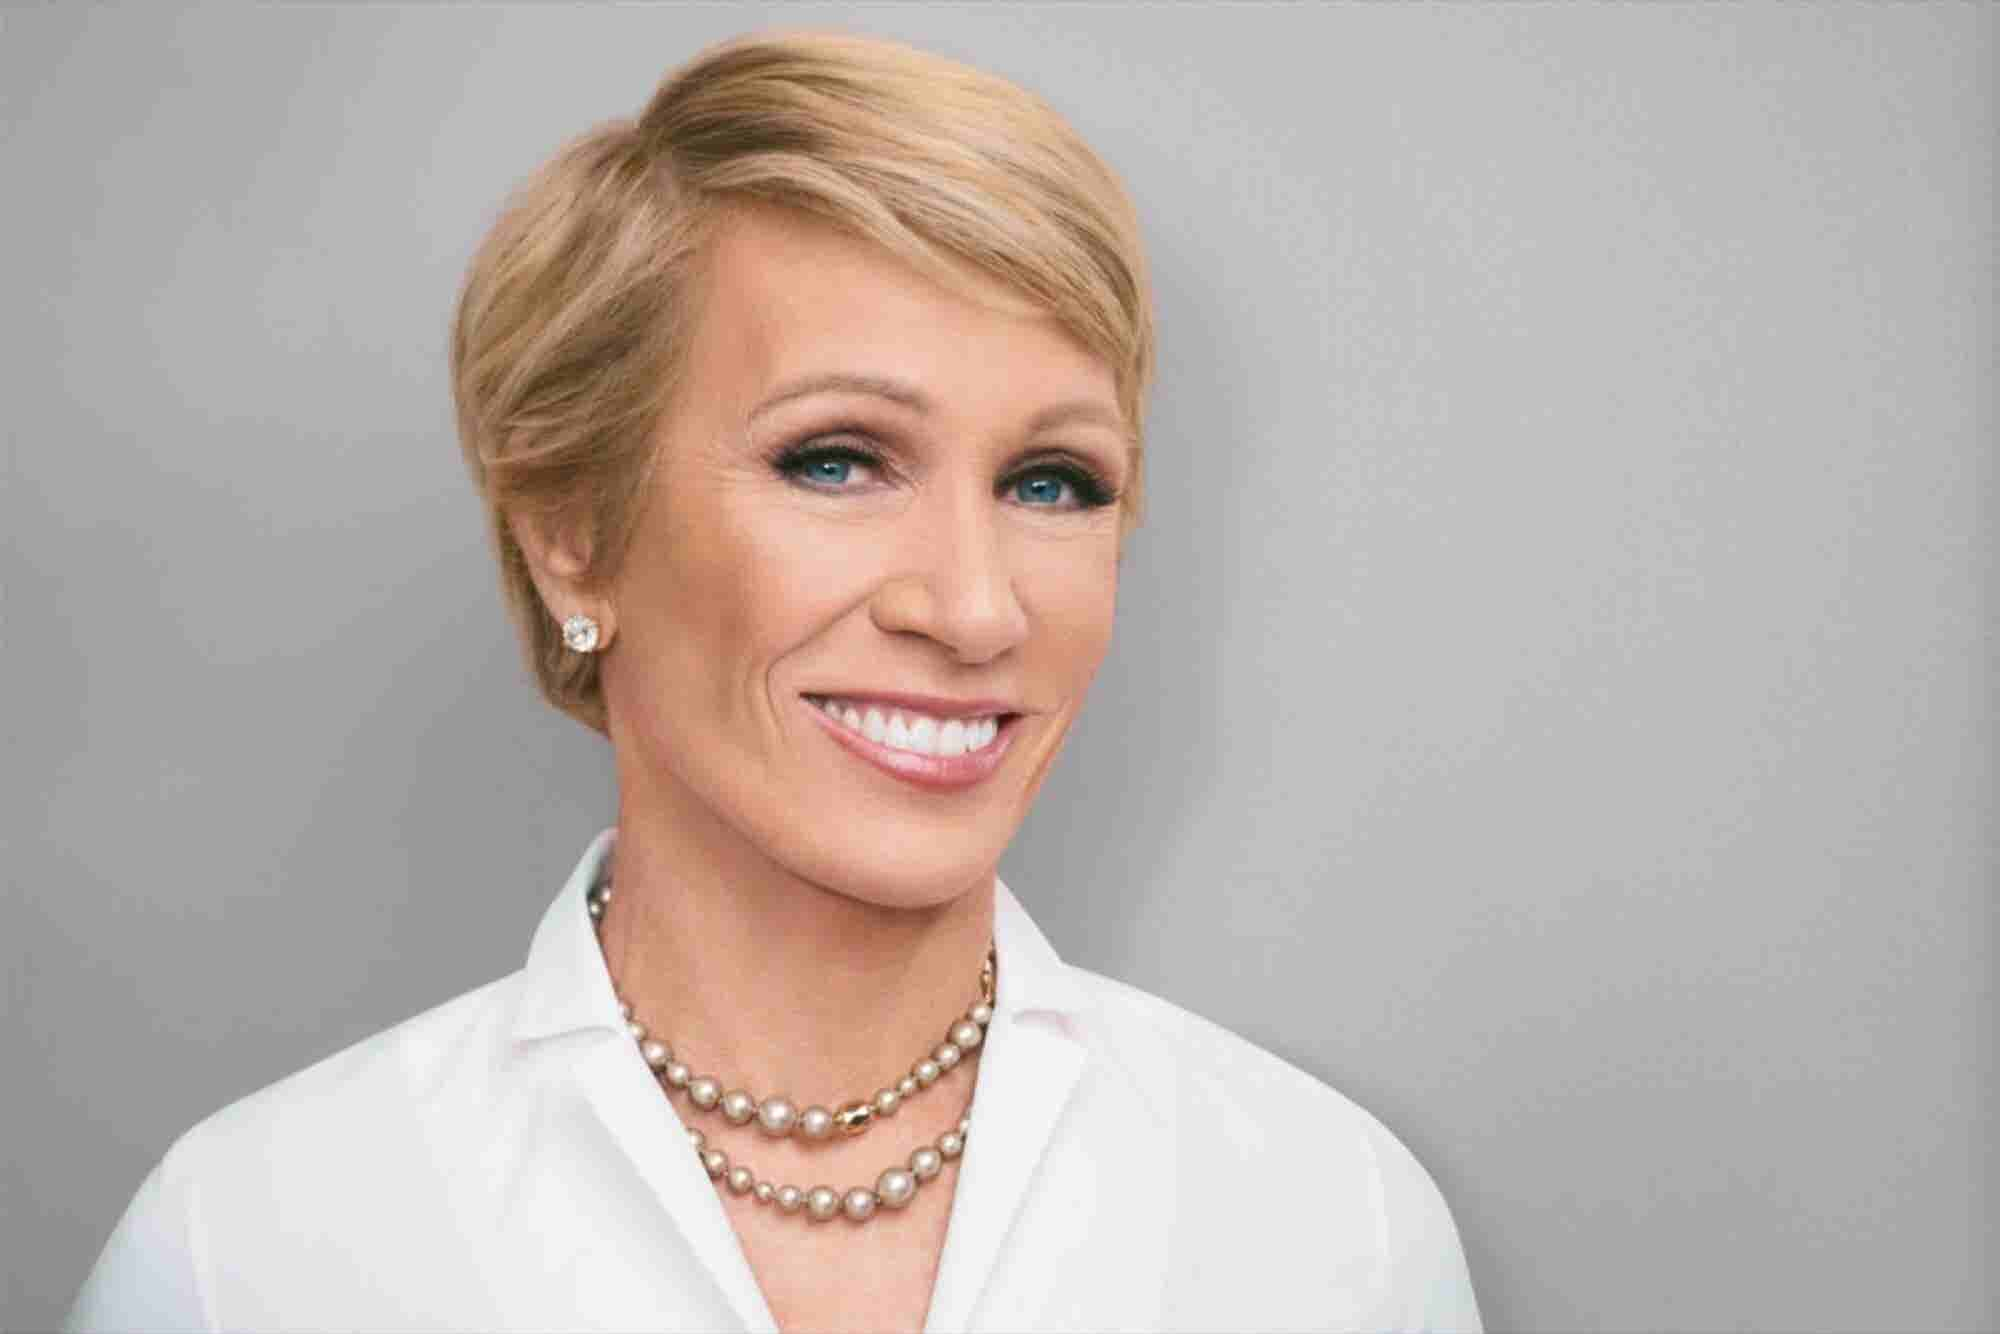 Can Barbara Corcoran Convince the New Generation of Entrepreneurs to Follow Her Lead?